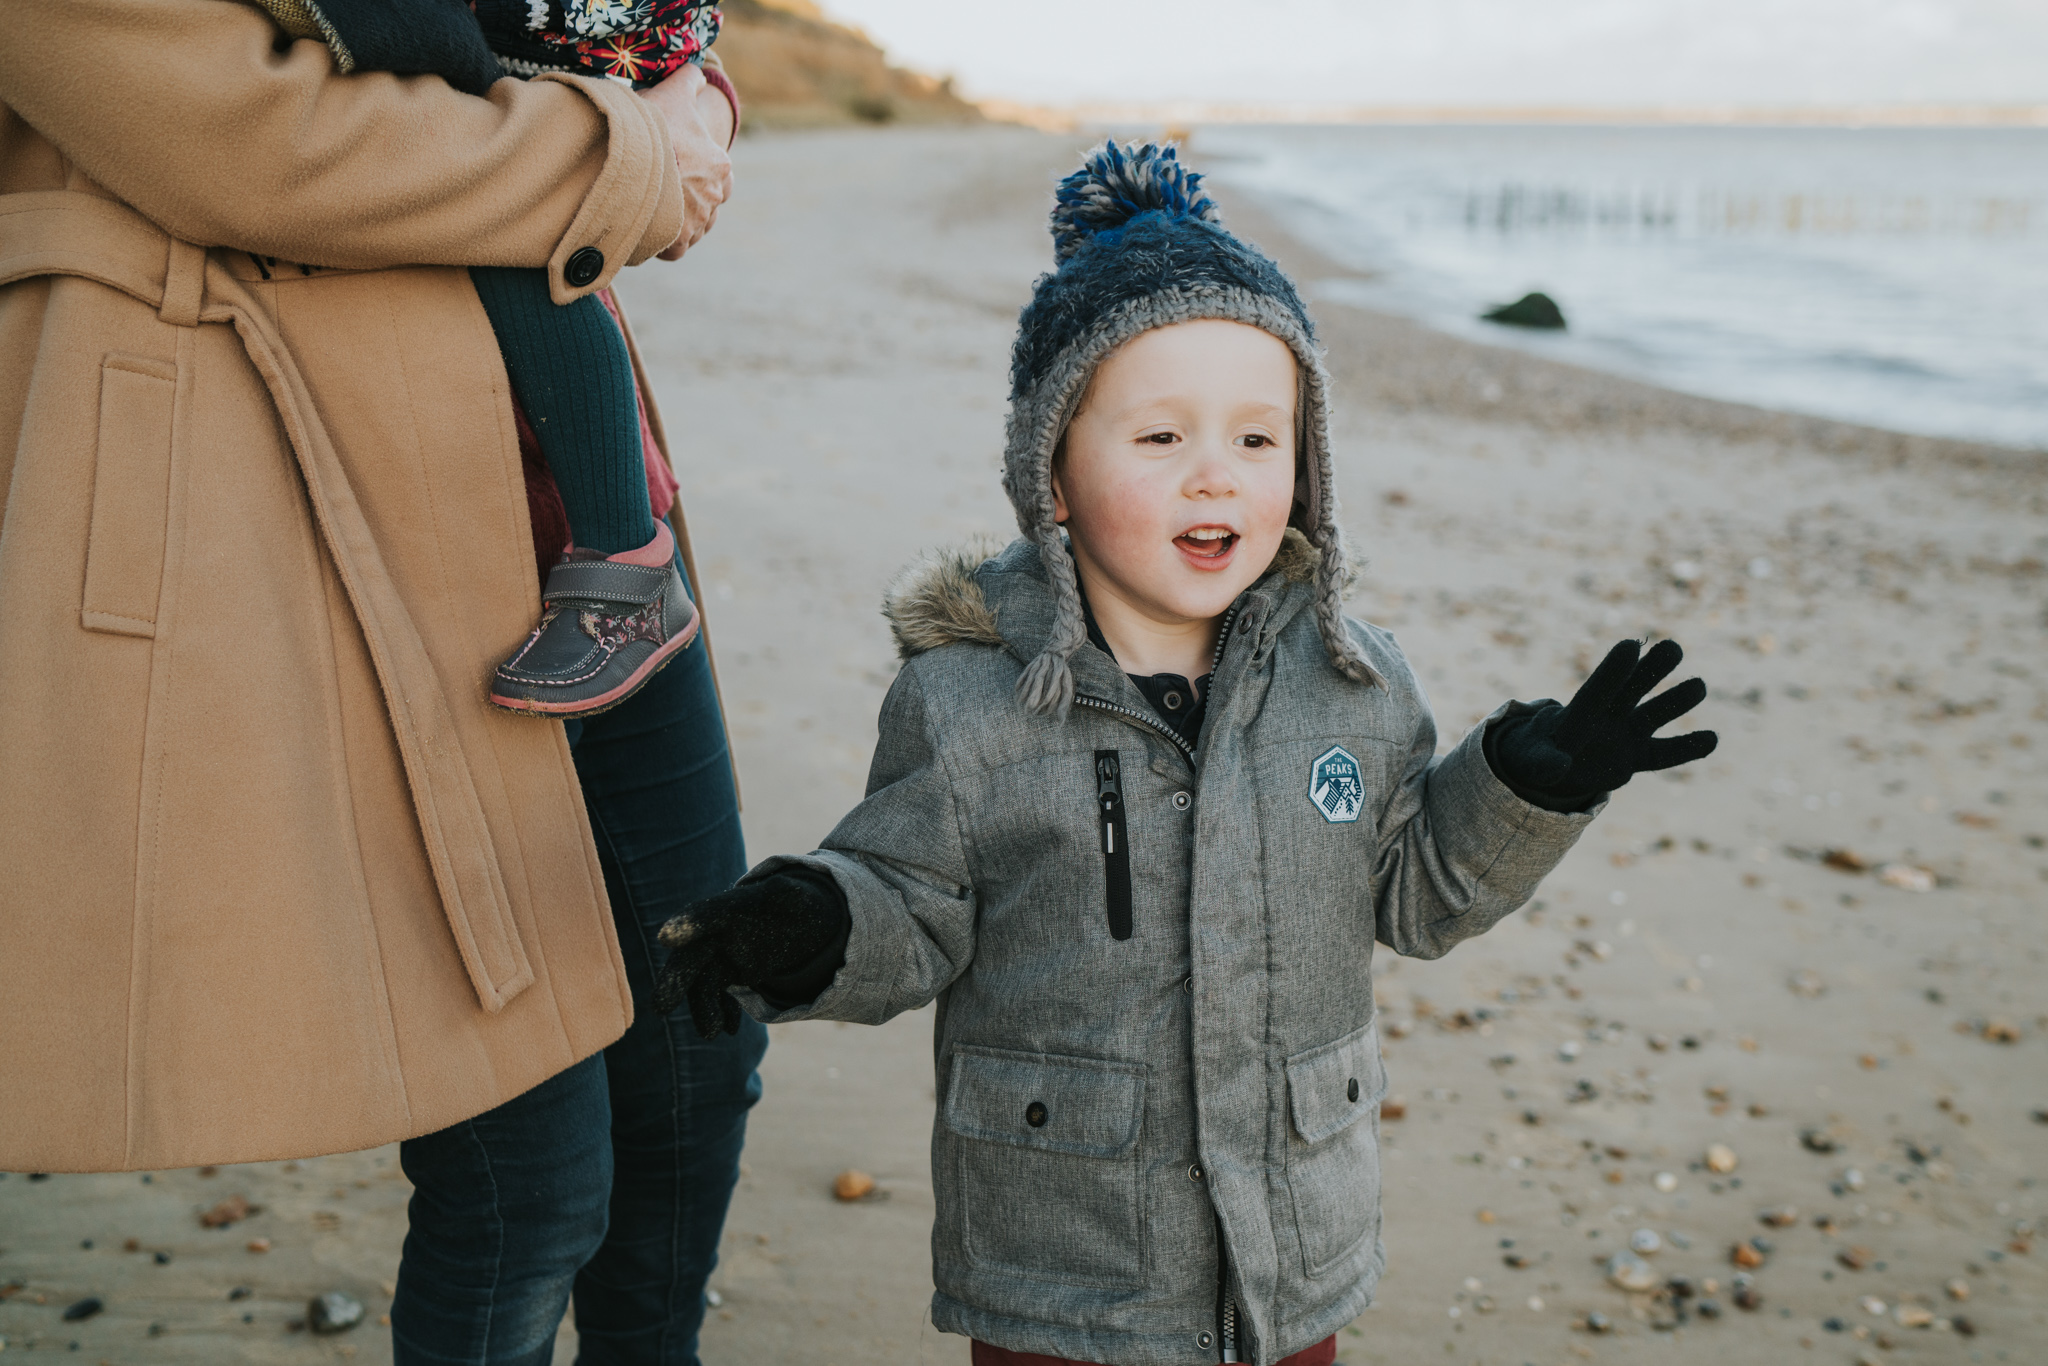 bushell-family-session-beach-cudmore-grove-lifestyle-grace-elizabeth-colchester-essex-alternative-relaxed-wedding-family-photography-devon-suffolk-norfolk-essex (23 of 34).jpg